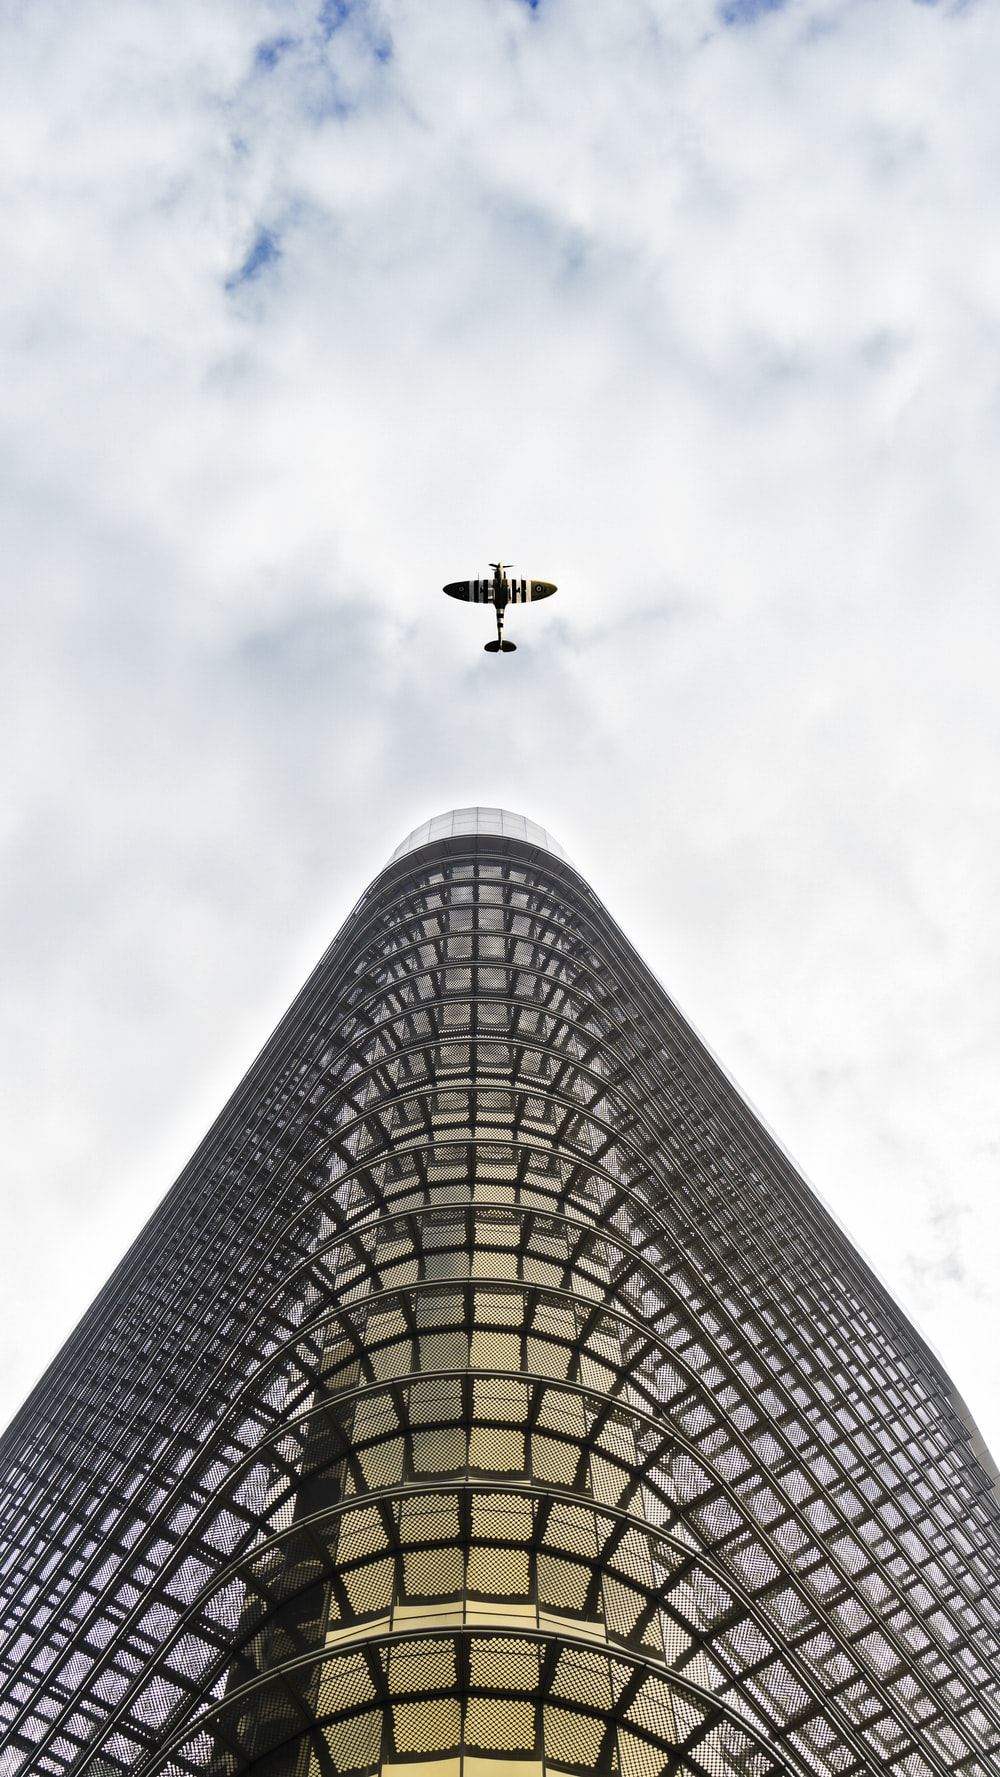 airplane flying over the building